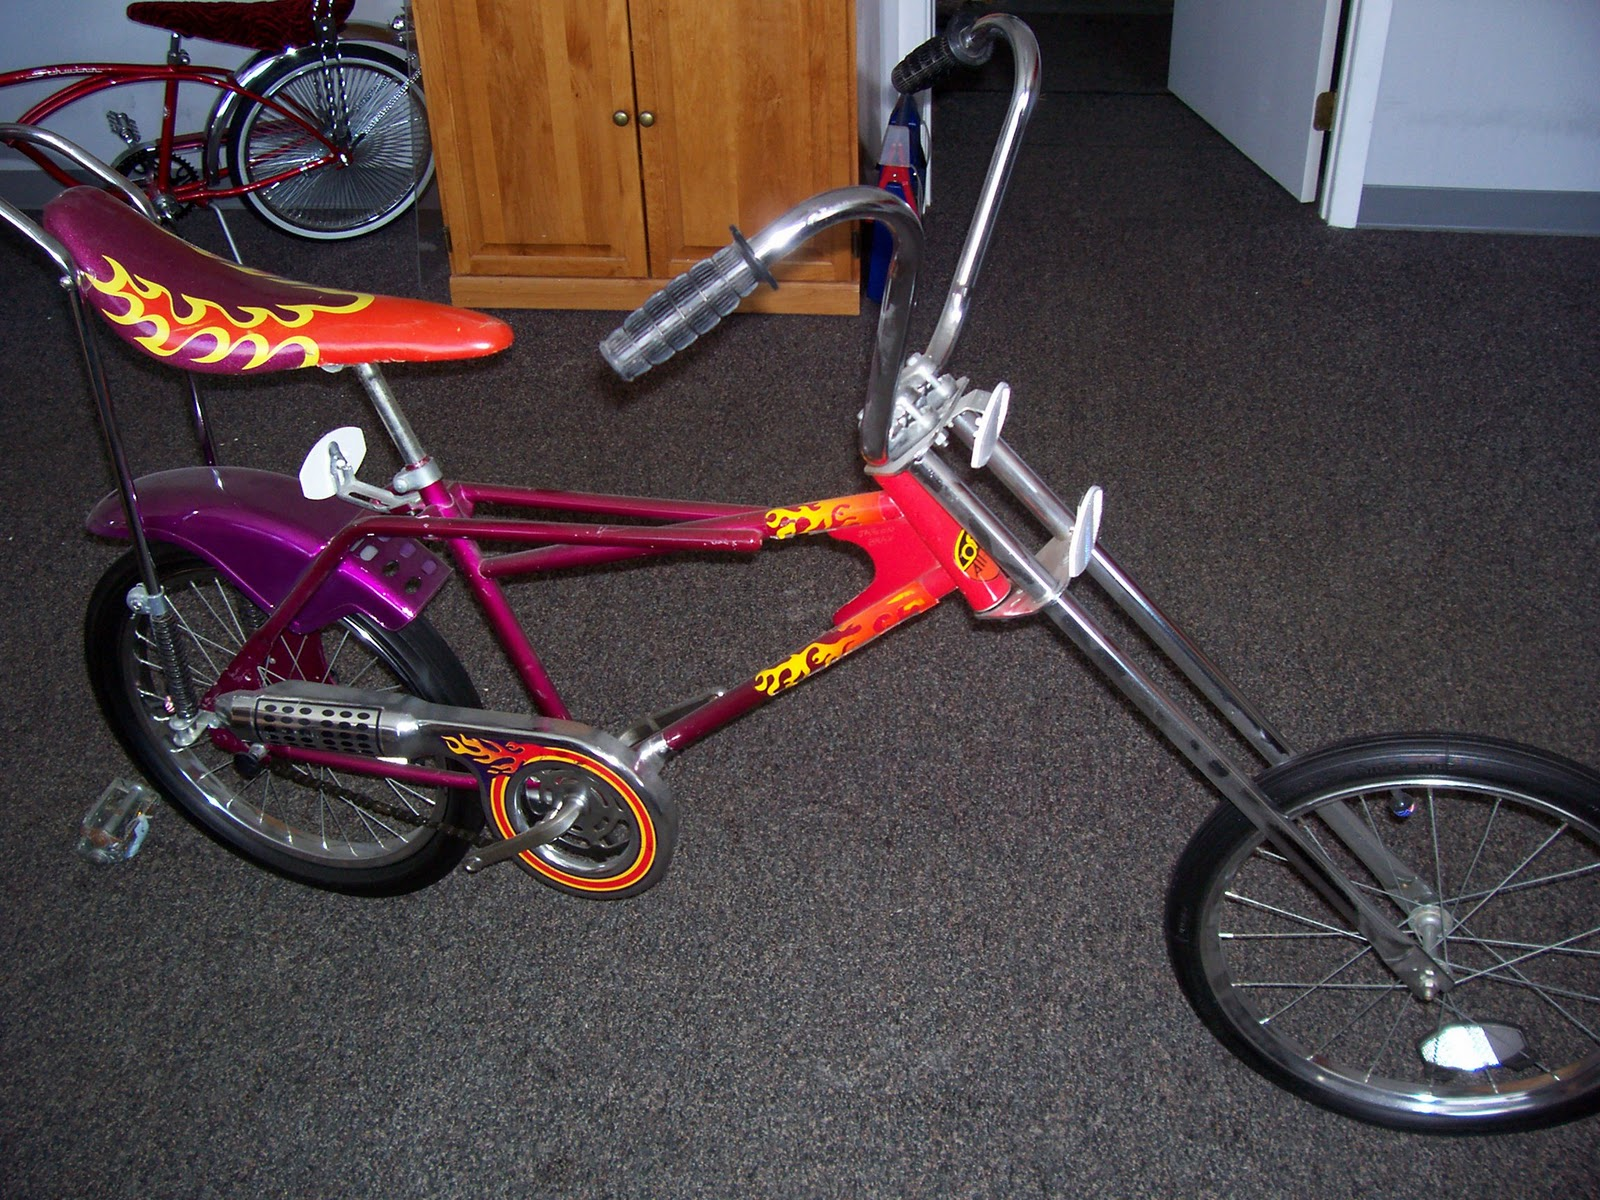 e5d623a2fef the raleigh chopper blog steve: MURRAY FIRECAT